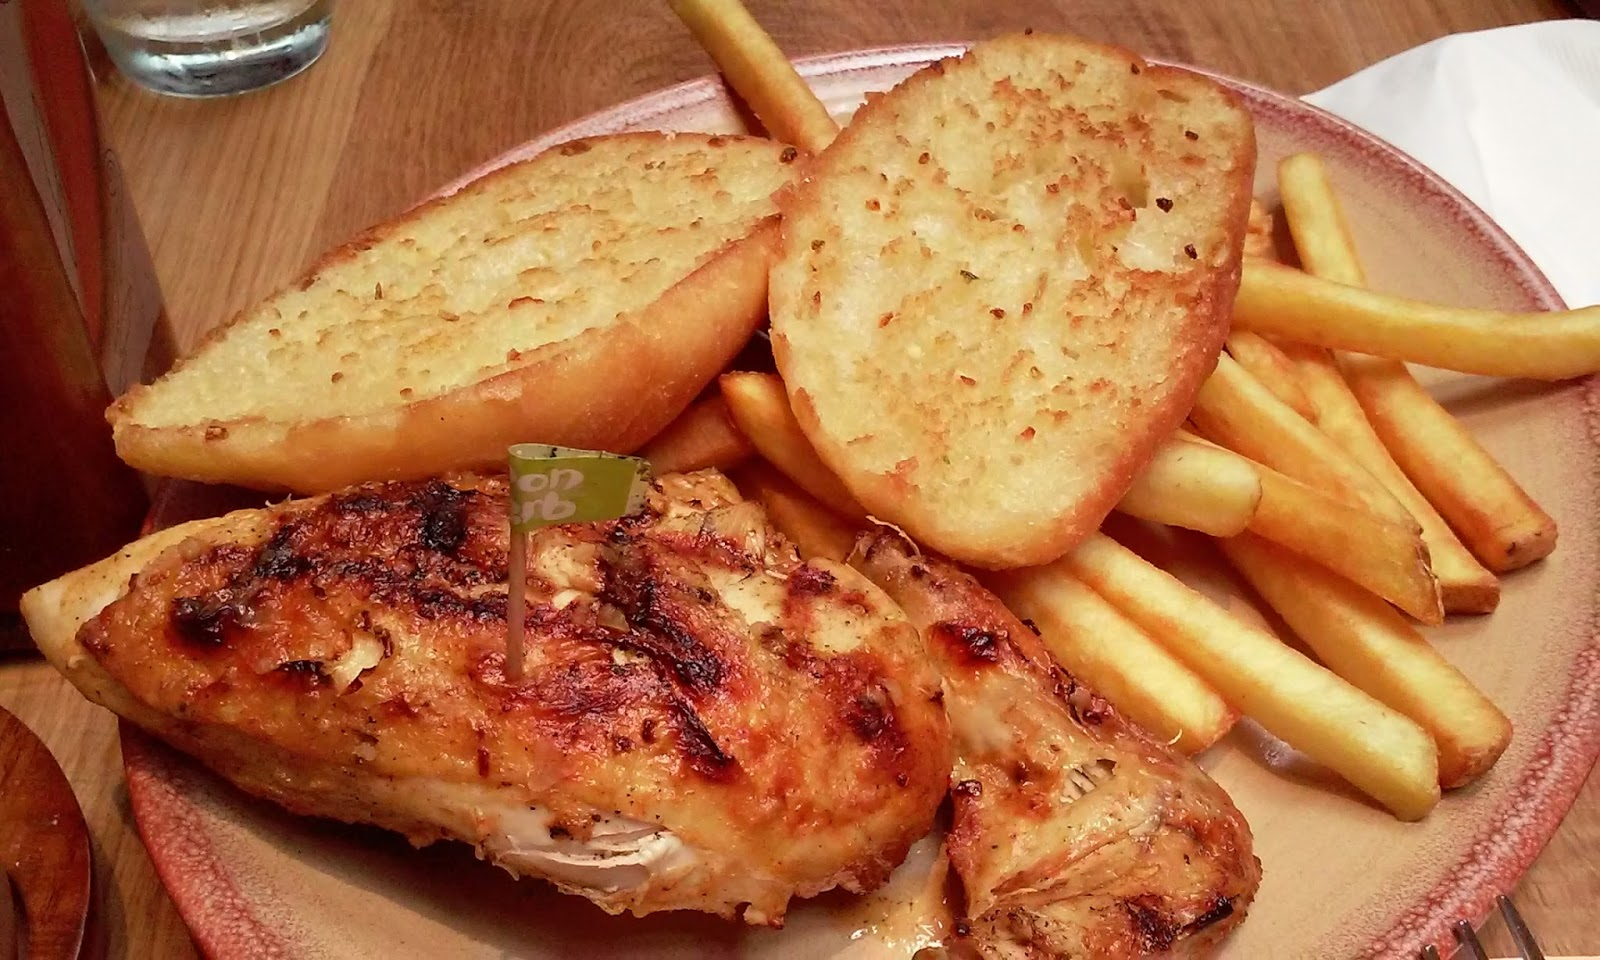 Grilled chicken with herb, garlic bread and fries.